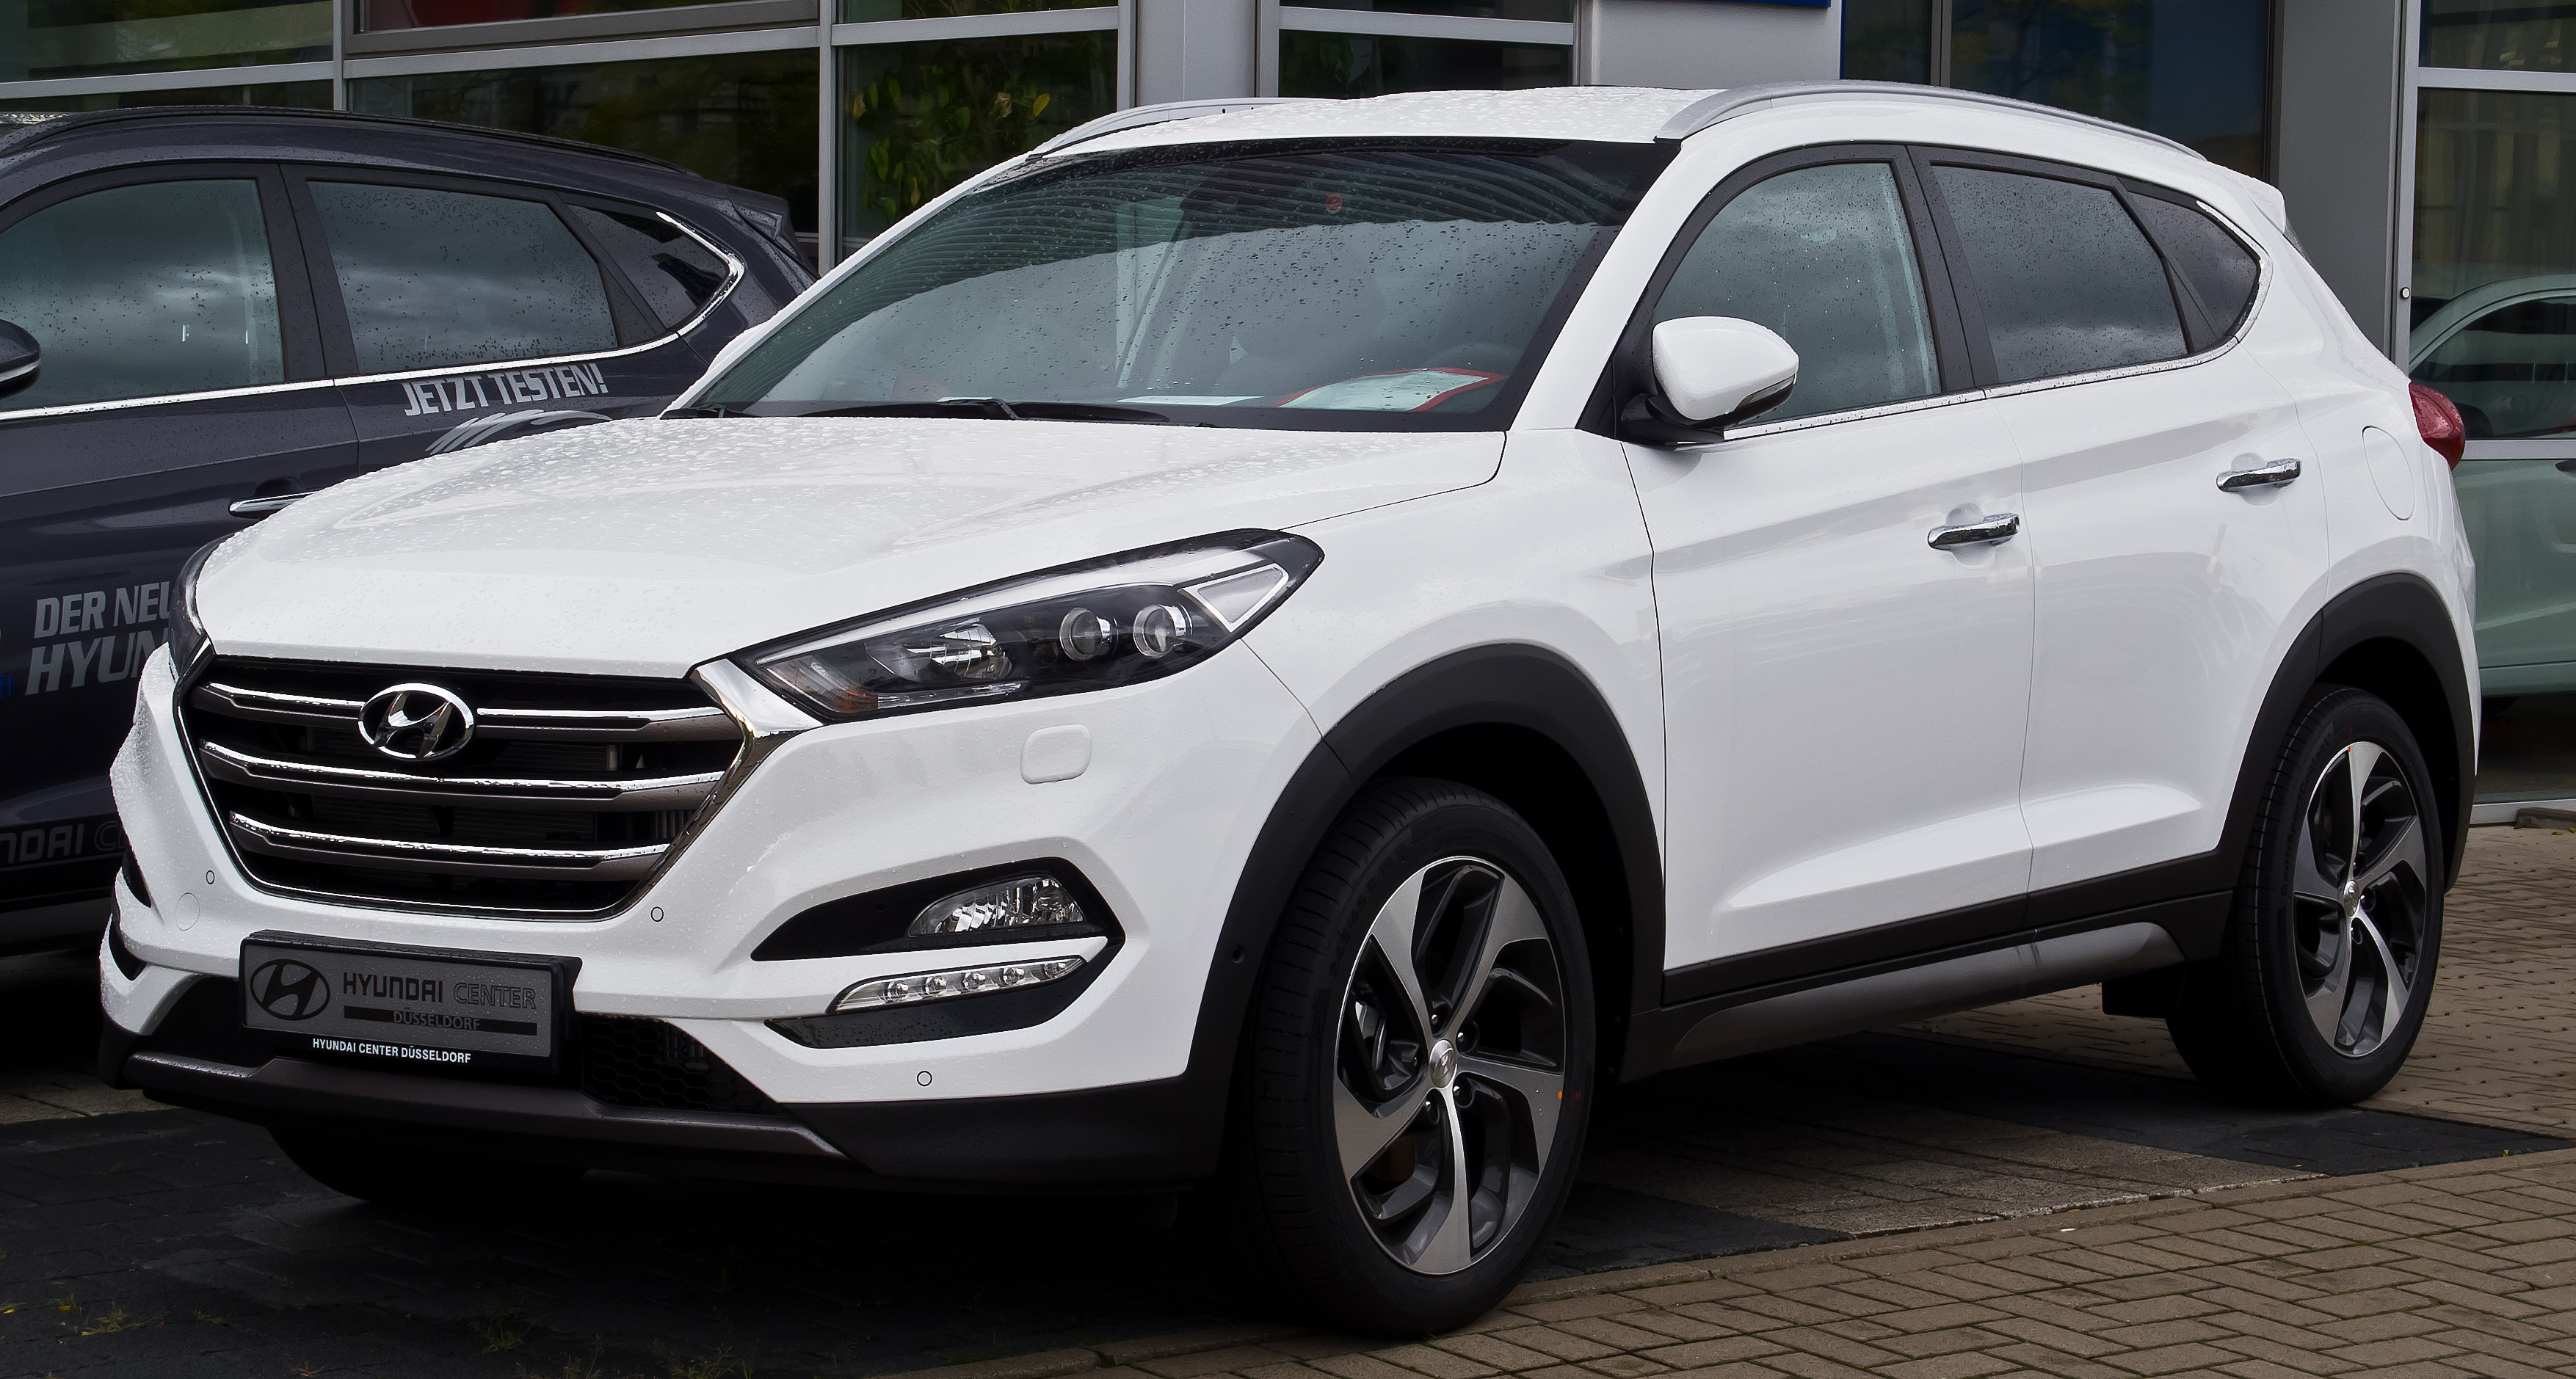 Hyundai Tucson Wikipedia The Free Encyclopedia Newhairstylesformen2014 Com